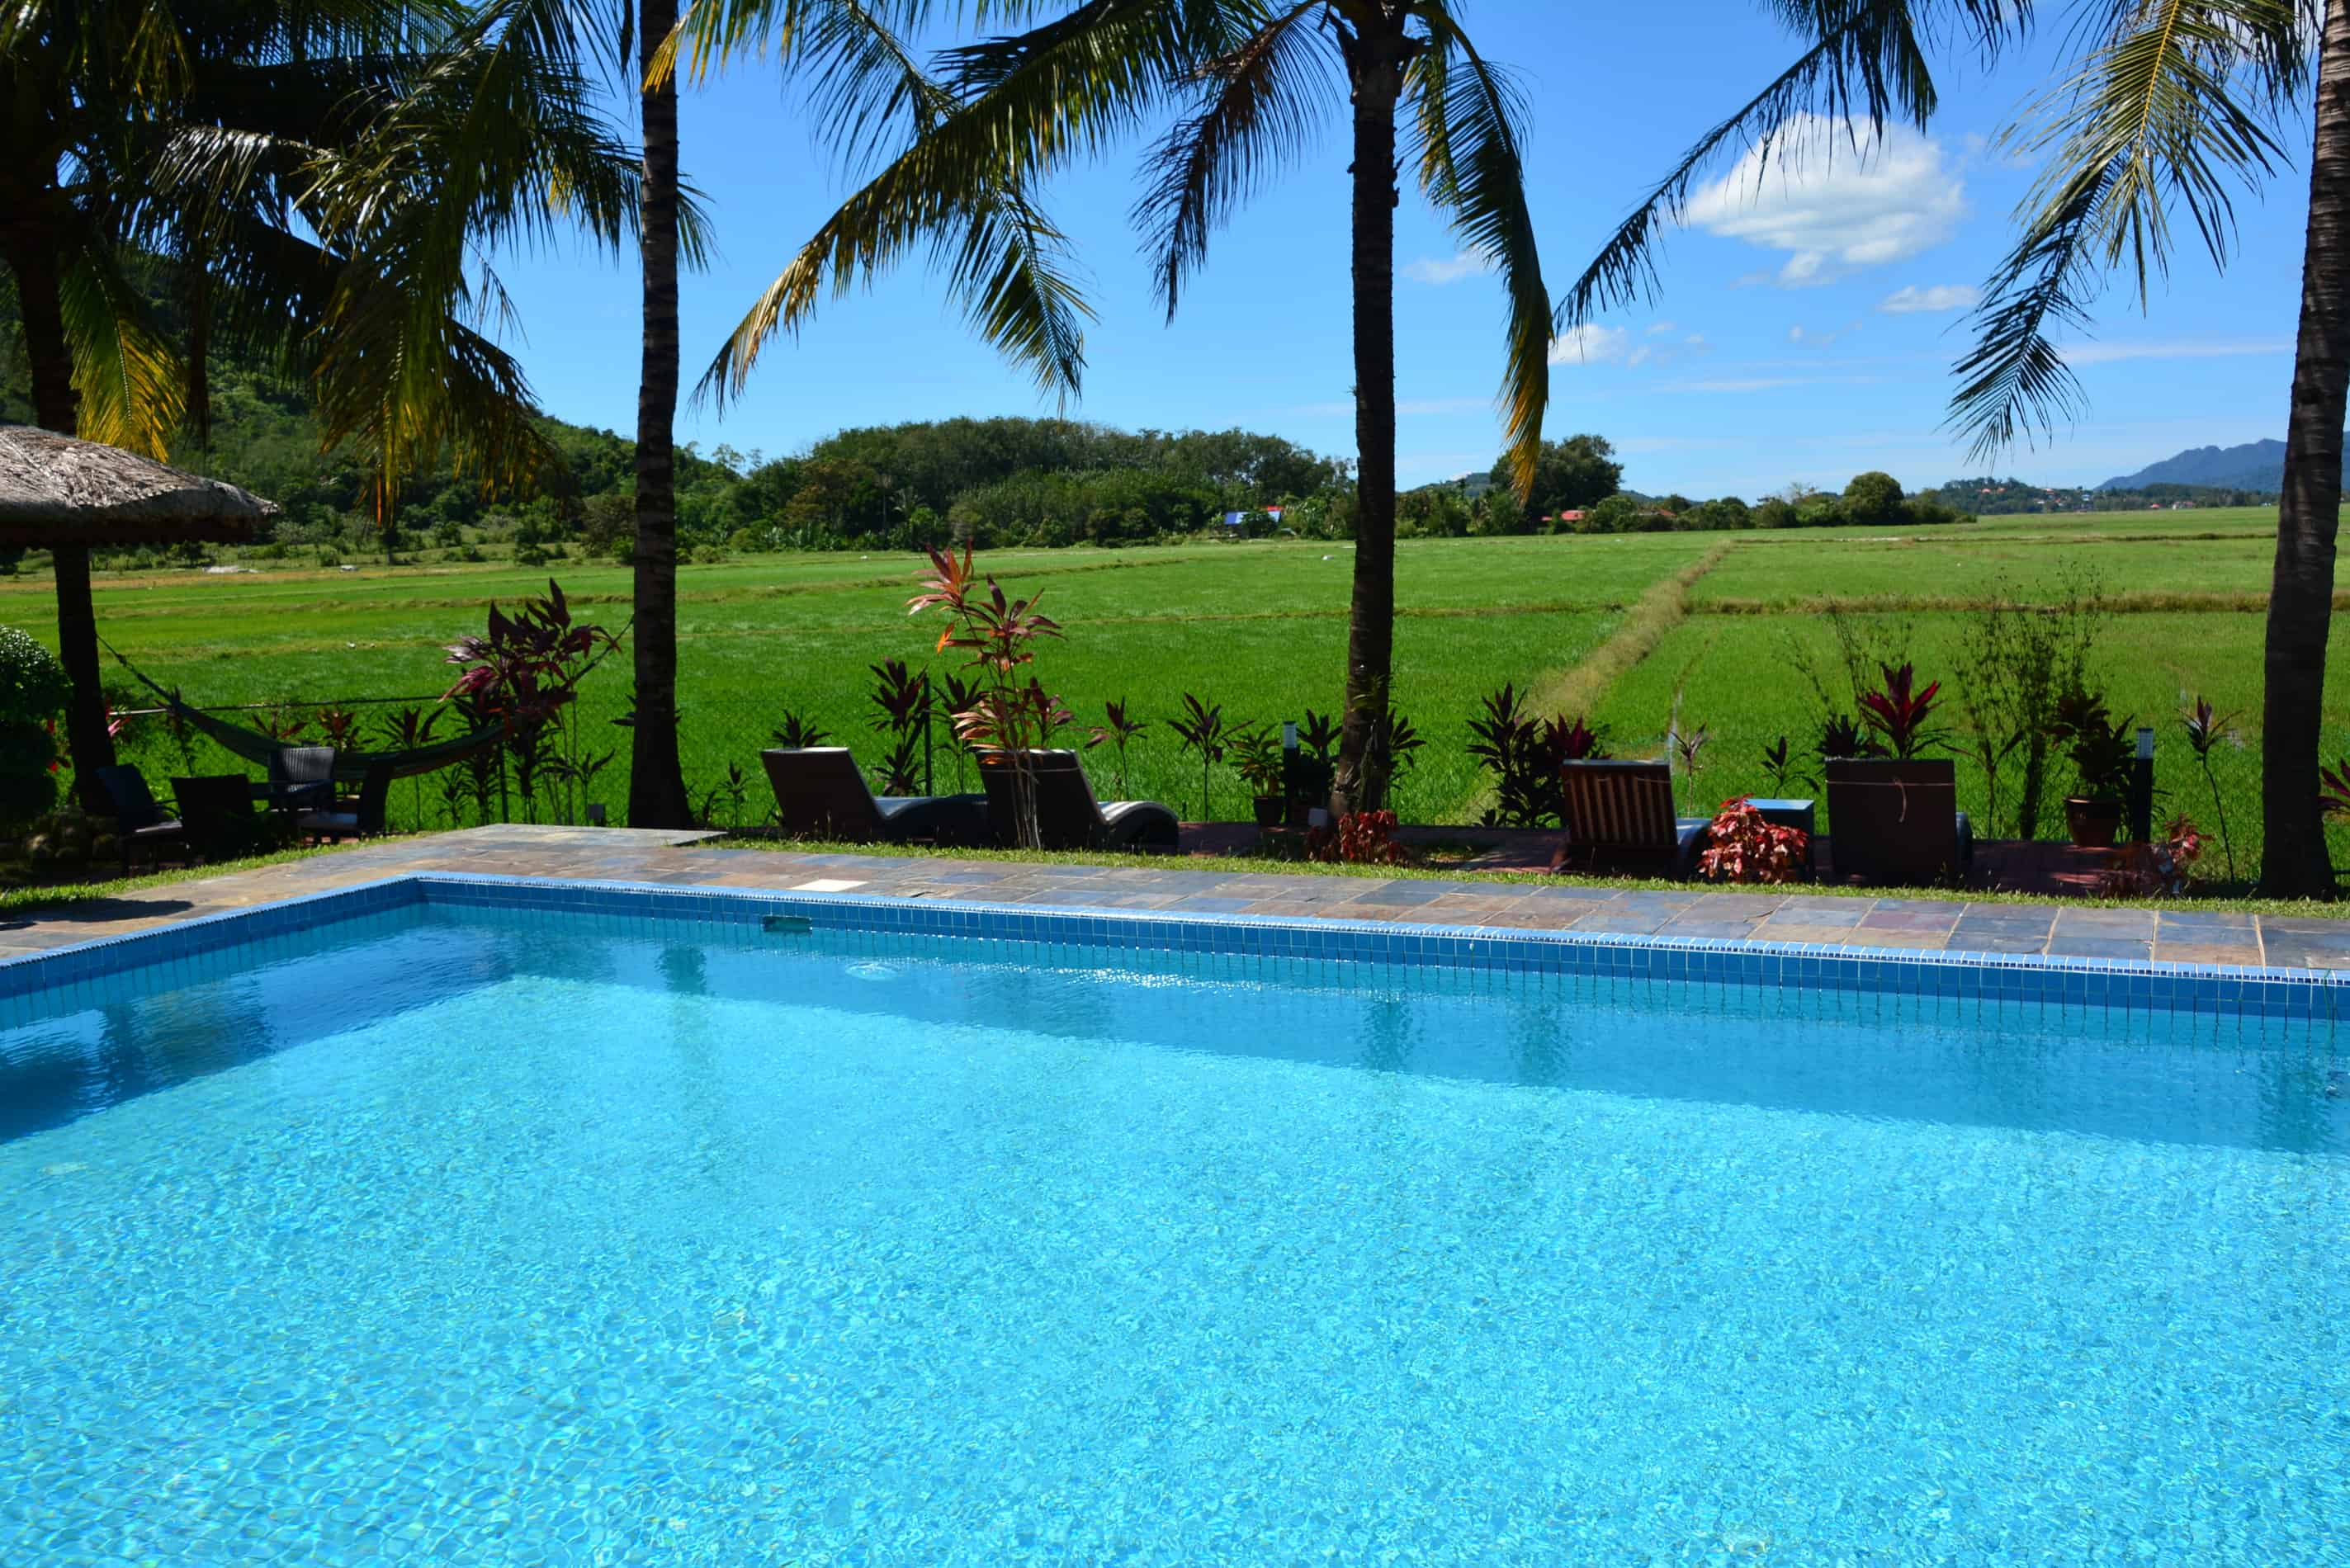 Sunset Valley Holiday Houses - Pool with rice paddy view